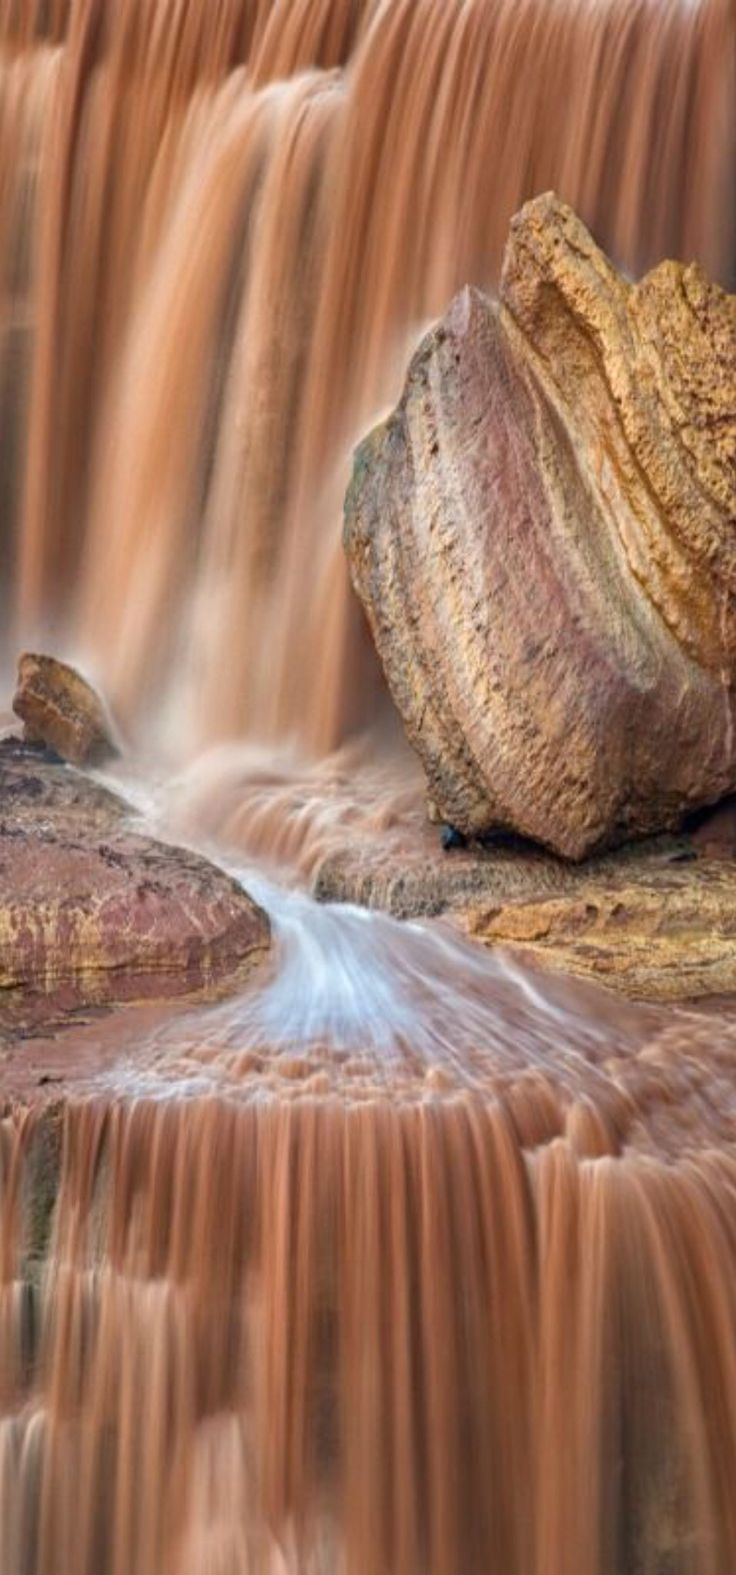 Chocolate Falls: 30 miles northeast of Flagstaff, Arizona in the Painted Desert